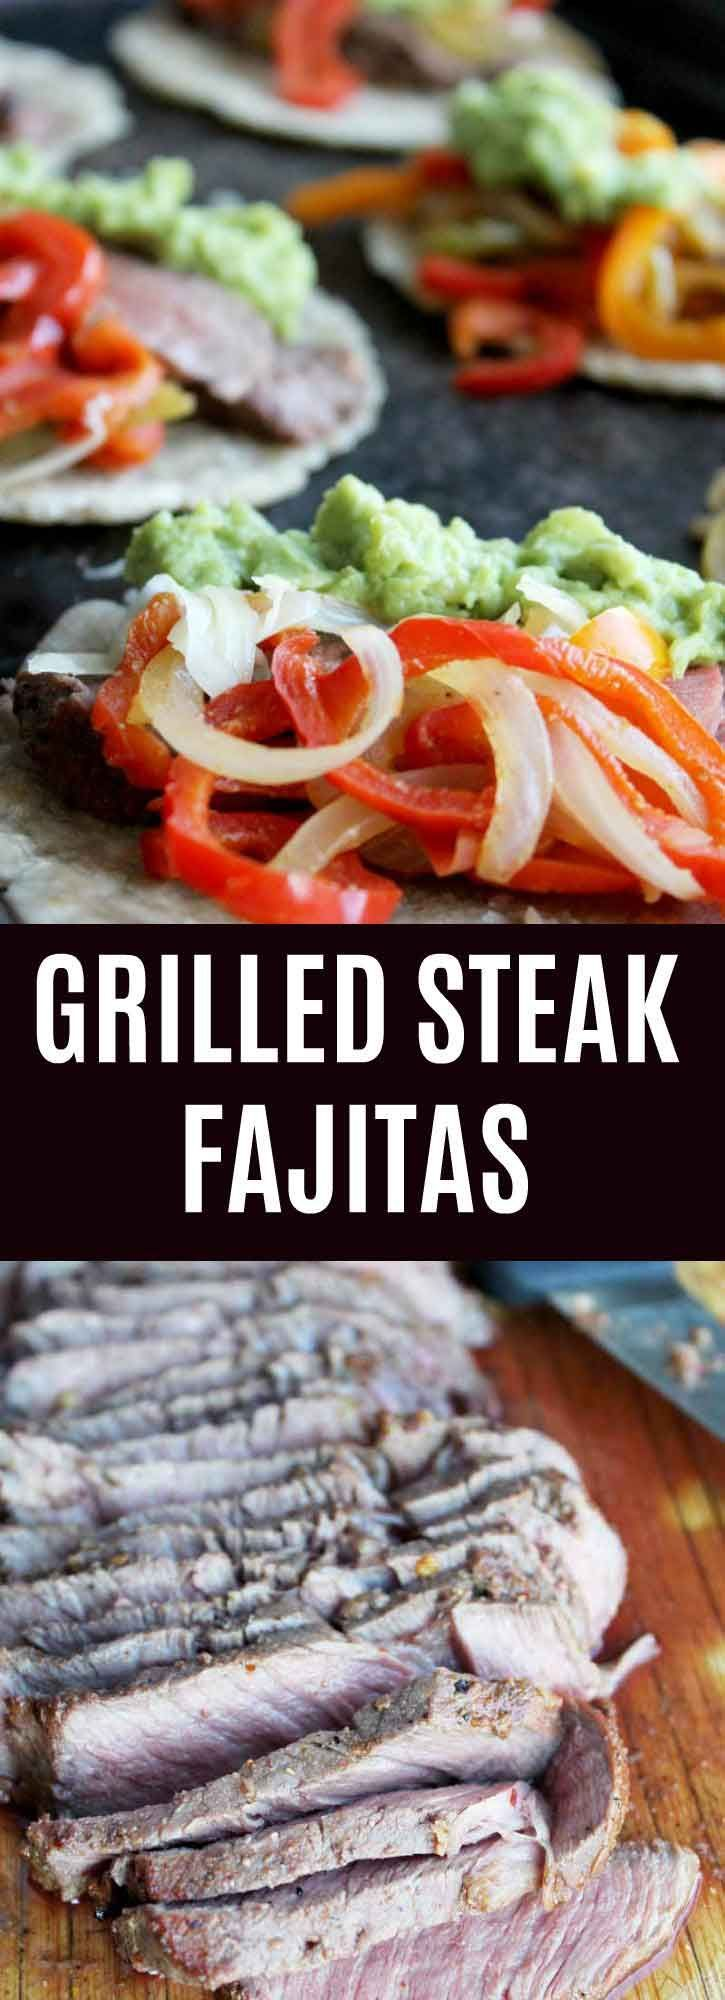 Easy Grilled Steak Fajitas Recipe | This a simple recipe that our family loves all year round. Easily made Paleo with grain free tortillas & dairy-free by omitting the cheese.  | thenourishedfamily.com